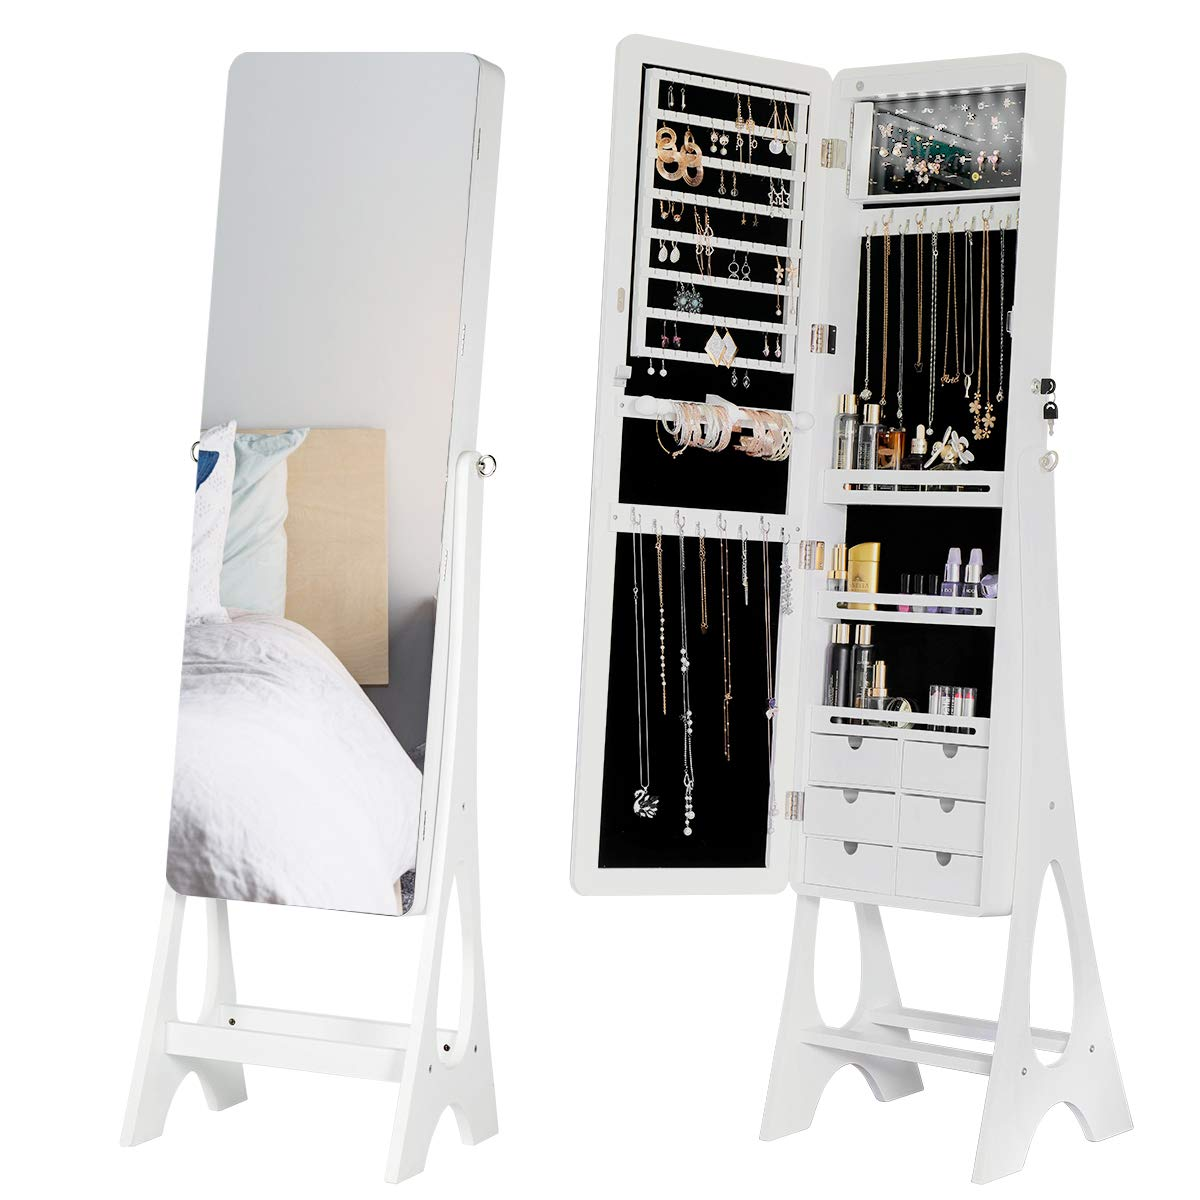 YOLENY Jewelry Organizer Jewelry Cabinet, Frameless Full Length Mirror, Lockable Design, Angle Adjuestable, Large Capacity Dressing Mirror Makeup Jewelry Armoire